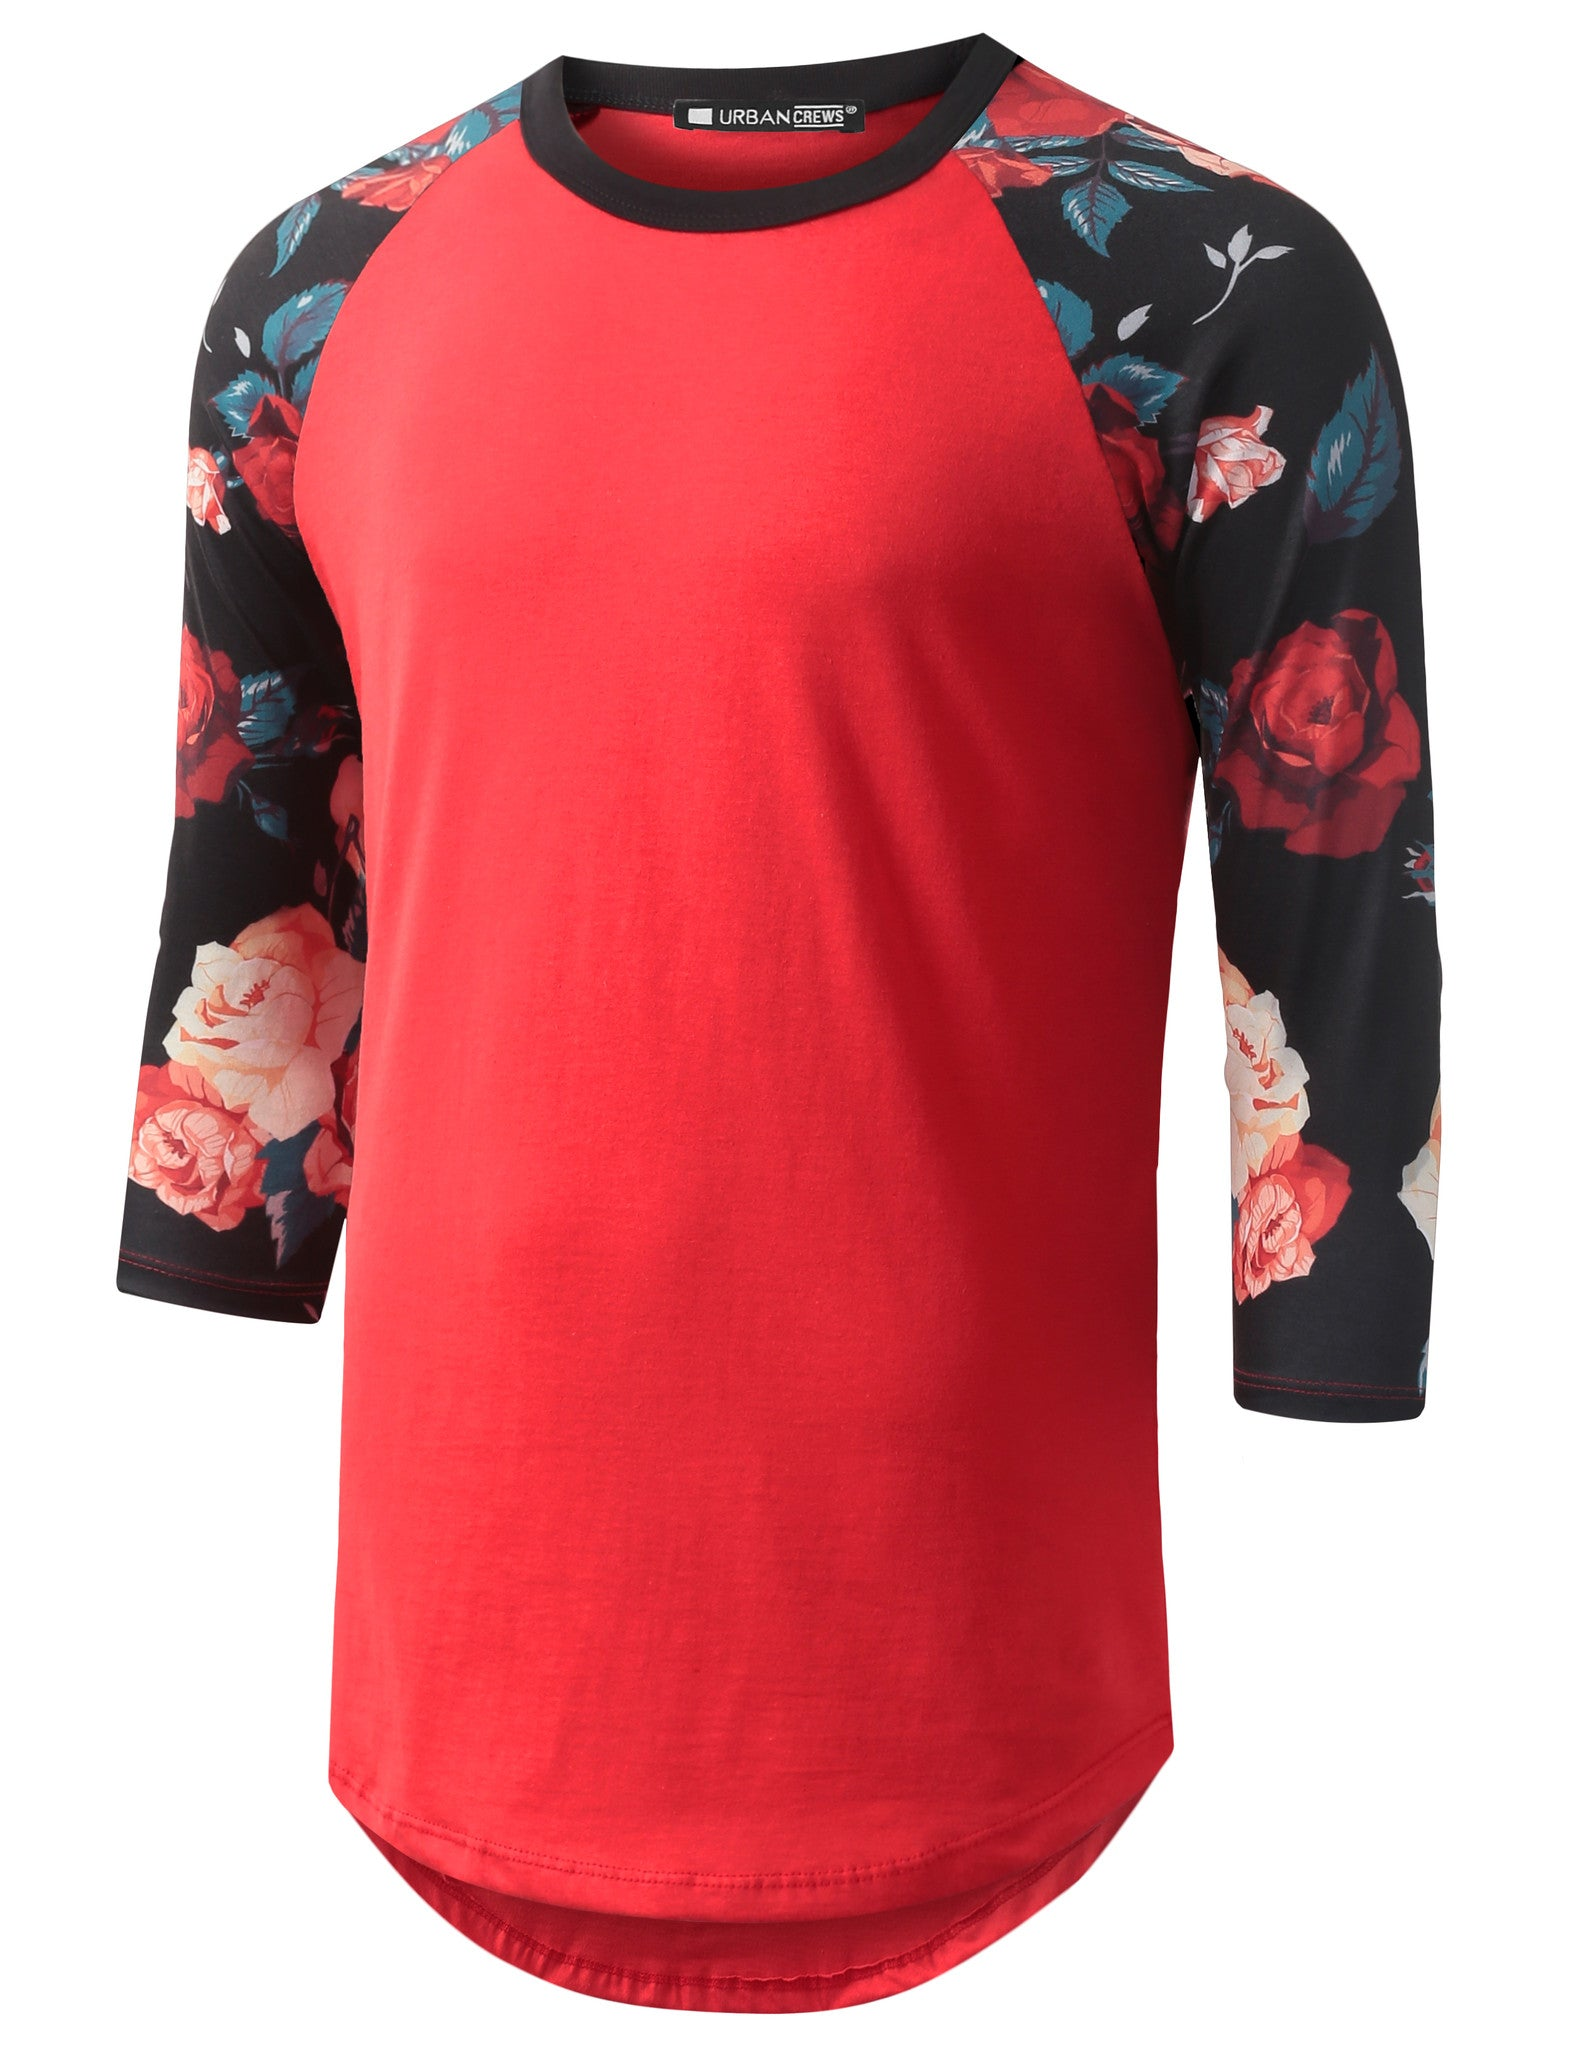 RED 3/4 Sleeve Multi Roses Red Longline Raglan Baseball Shirt- URBANCREWS